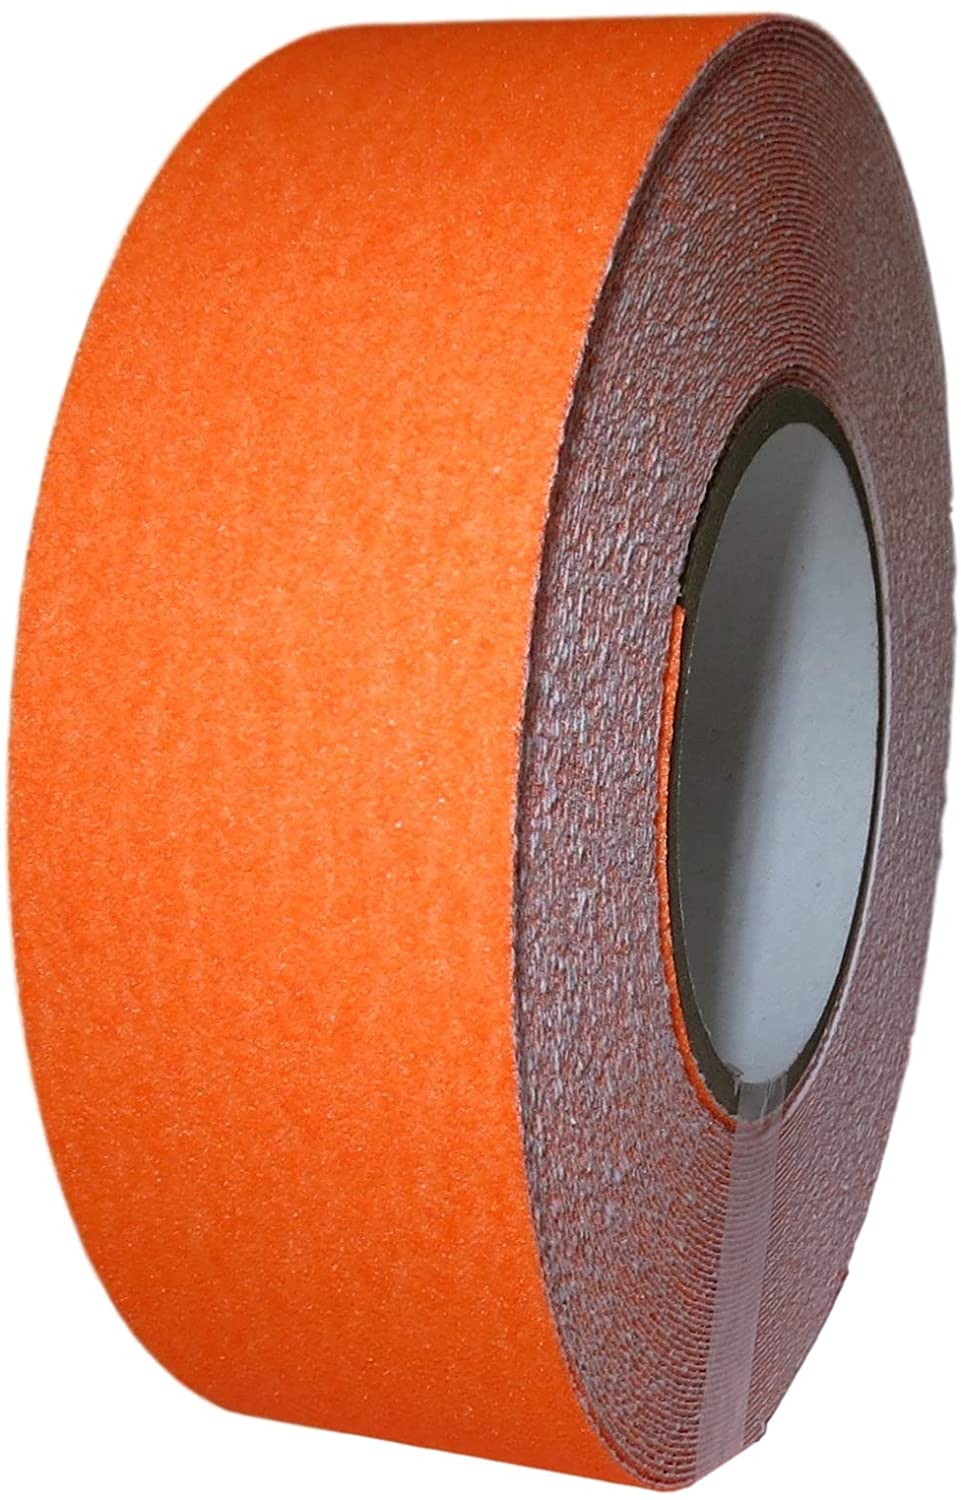 T.R.U. NST-20 Non-Skid Tape 60 ft. length Safety Way 60 Grit Anti Slip Traction Tape 32 Mil No Slip (4 in. x 60 ft. (100mm wide), Fluorescent Orange)